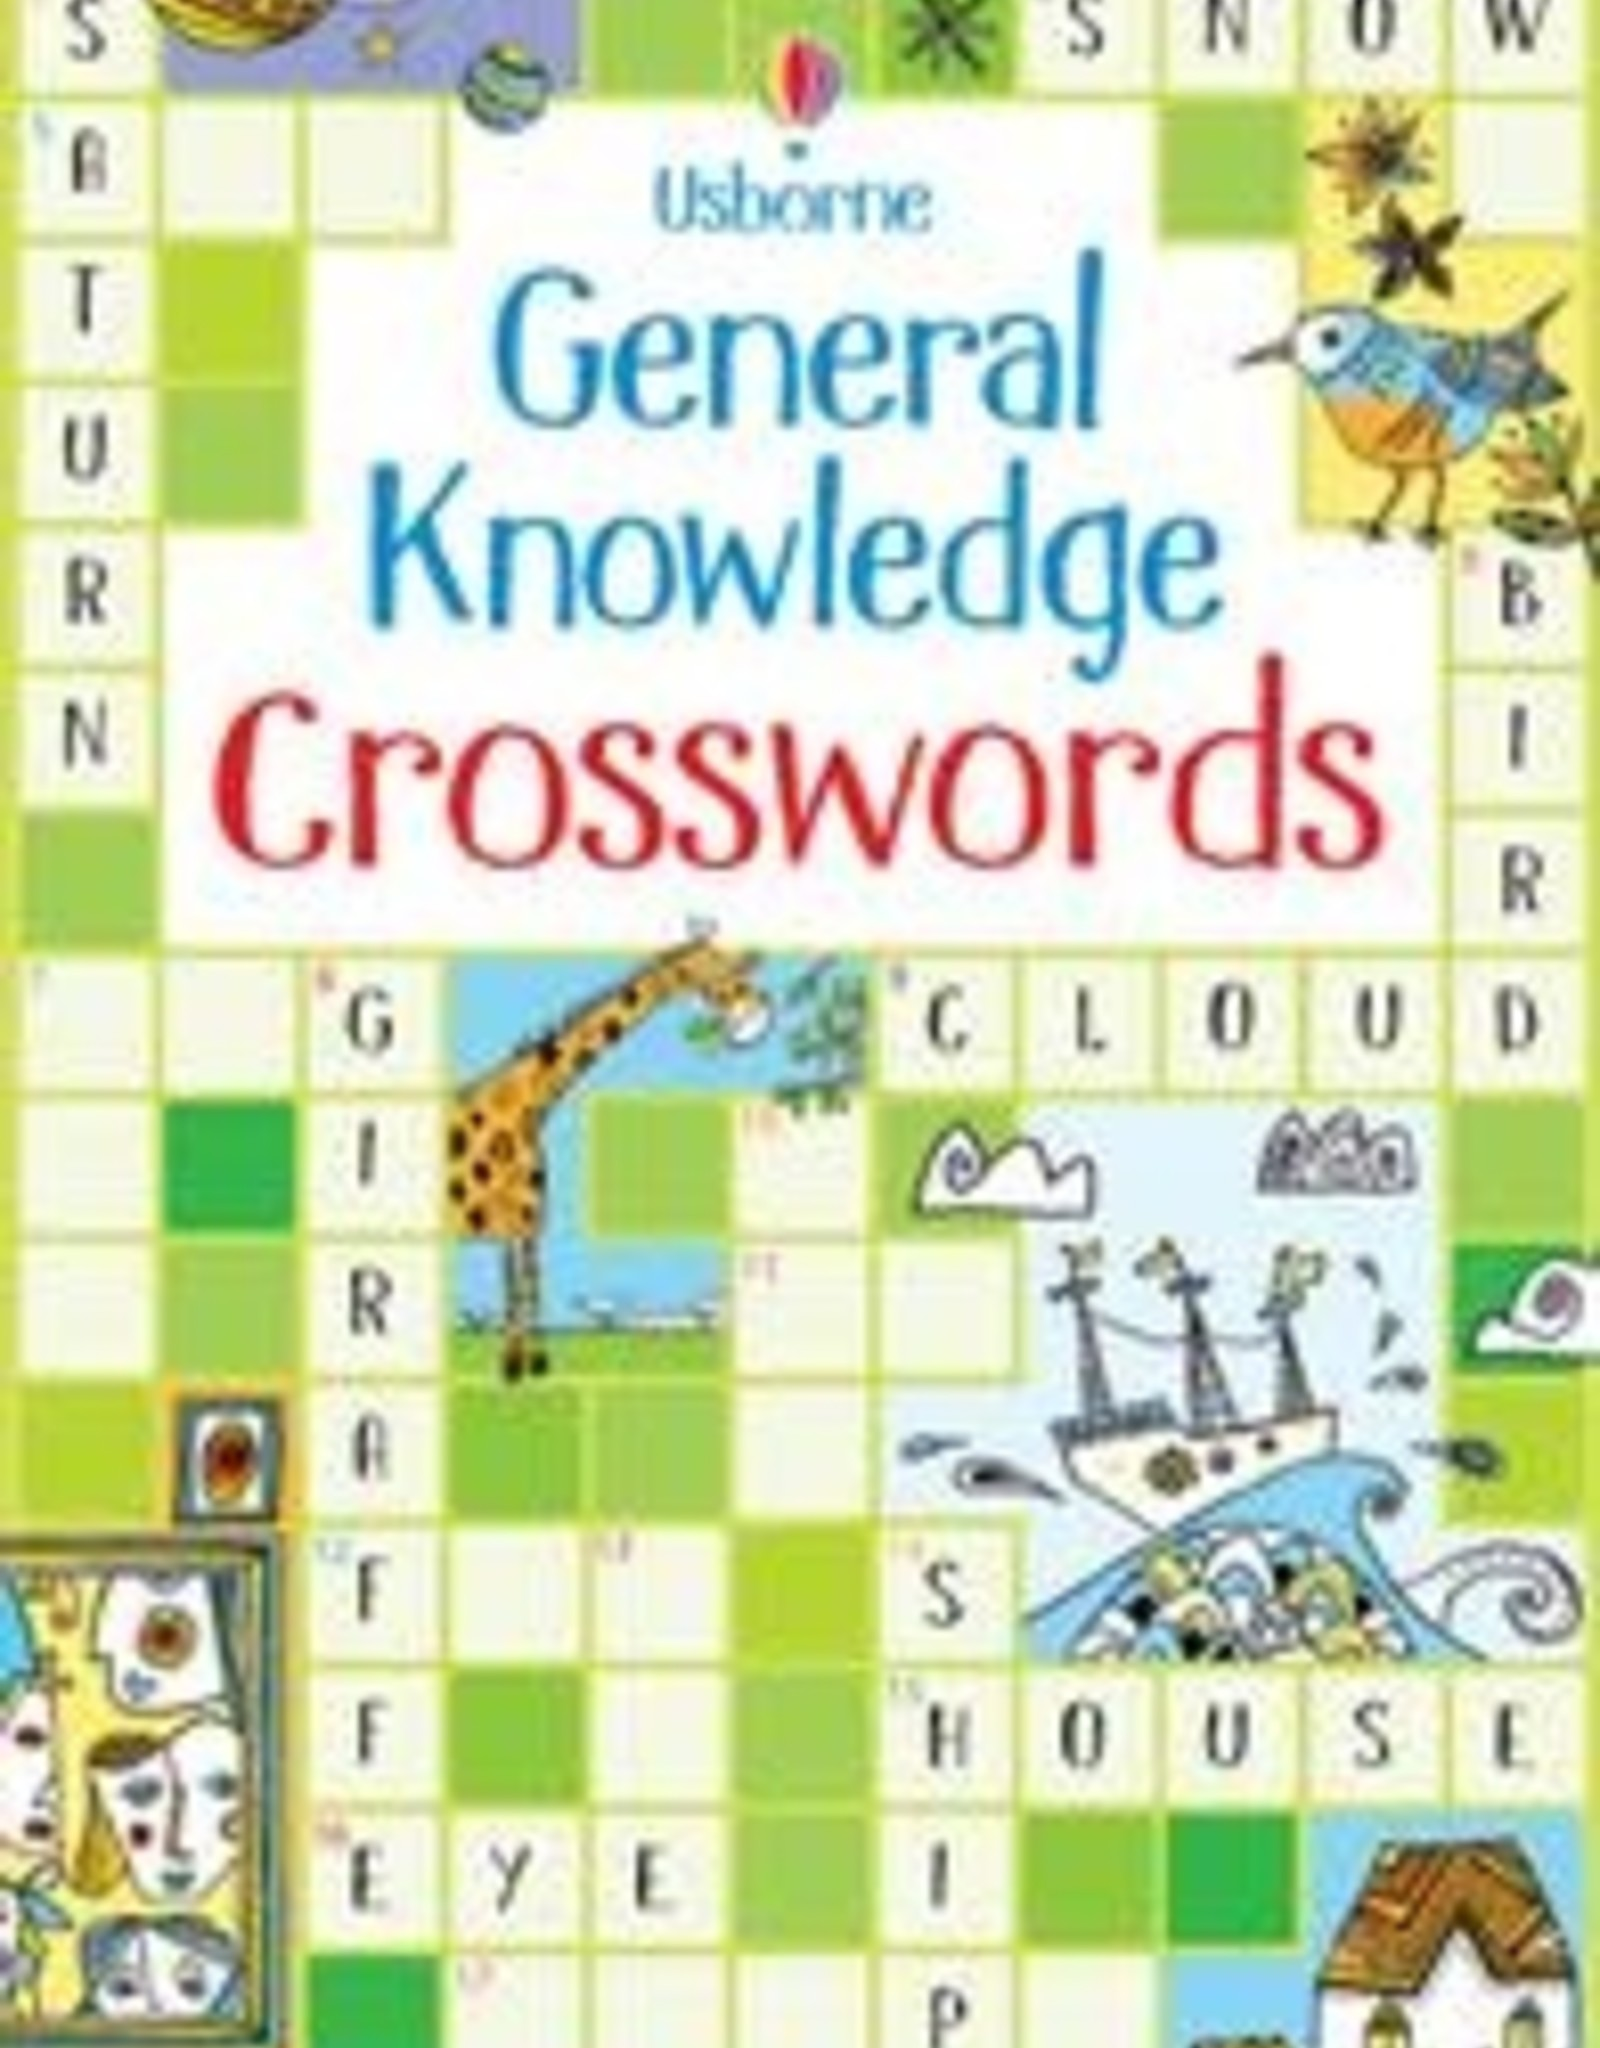 Usborne Crosswords General Knowledge